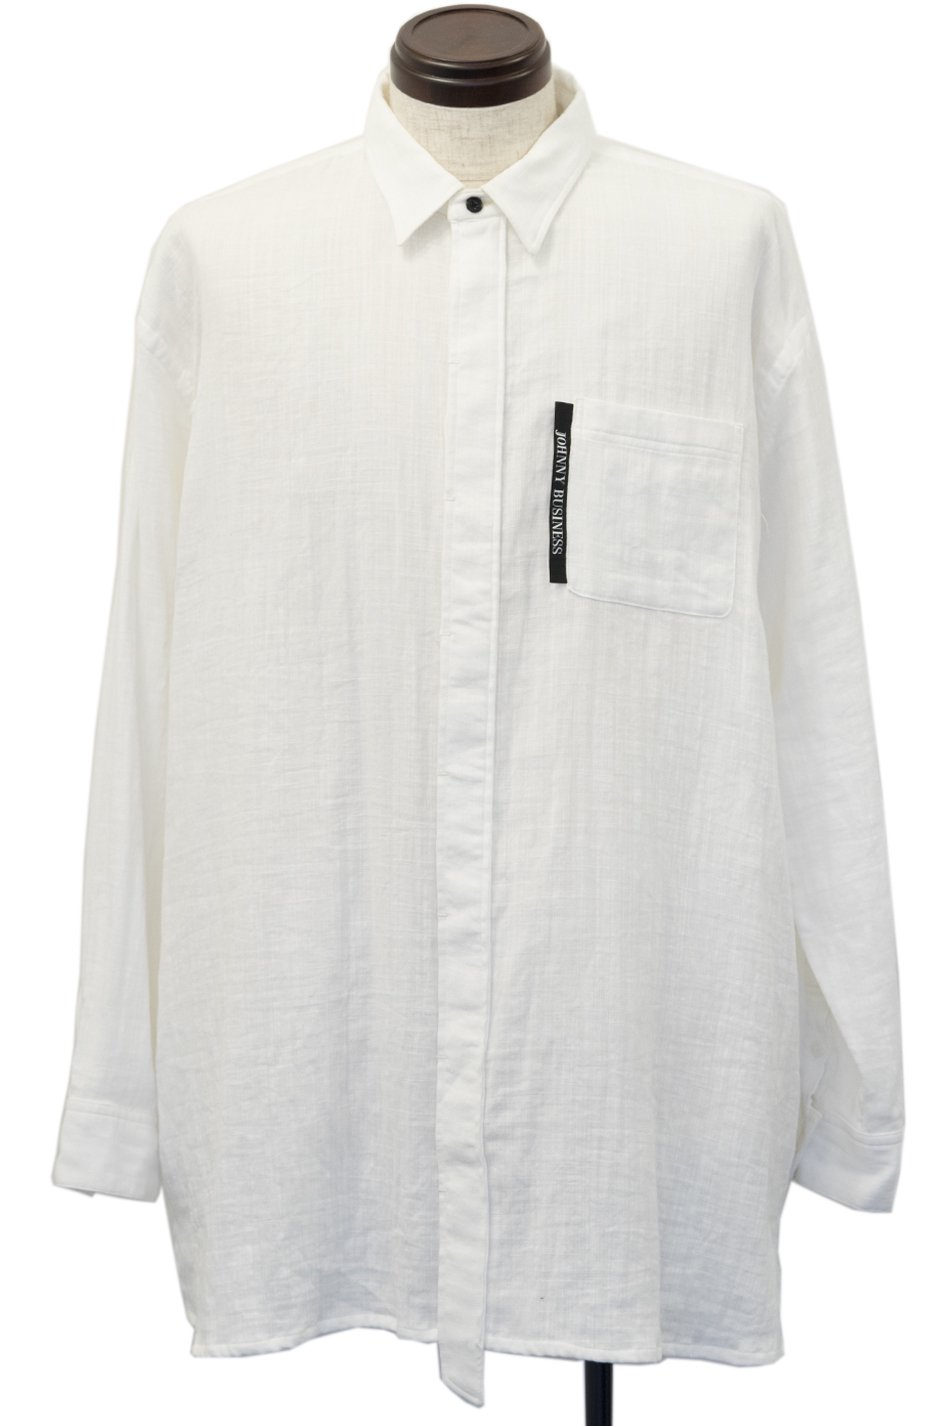 In The Tokyo Shirts/White